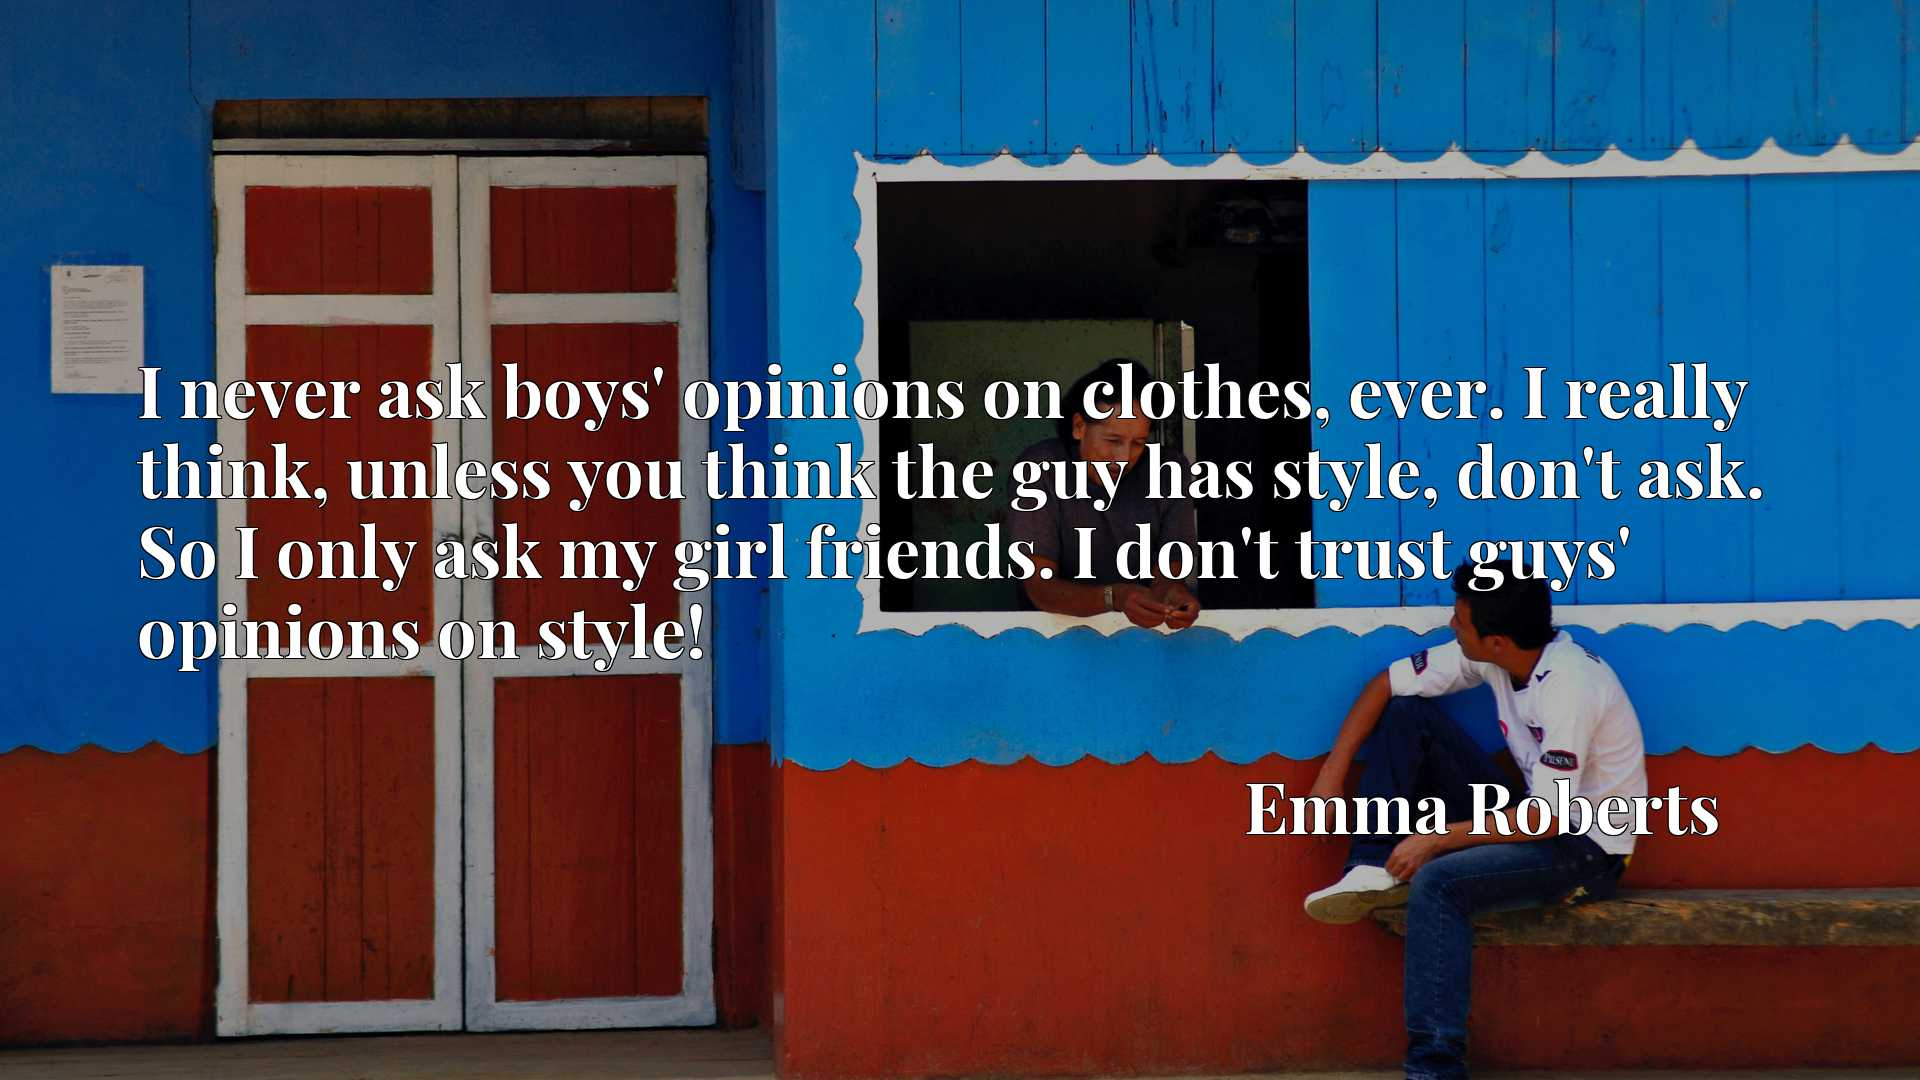 I never ask boys' opinions on clothes, ever. I really think, unless you think the guy has style, don't ask. So I only ask my girl friends. I don't trust guys' opinions on style!